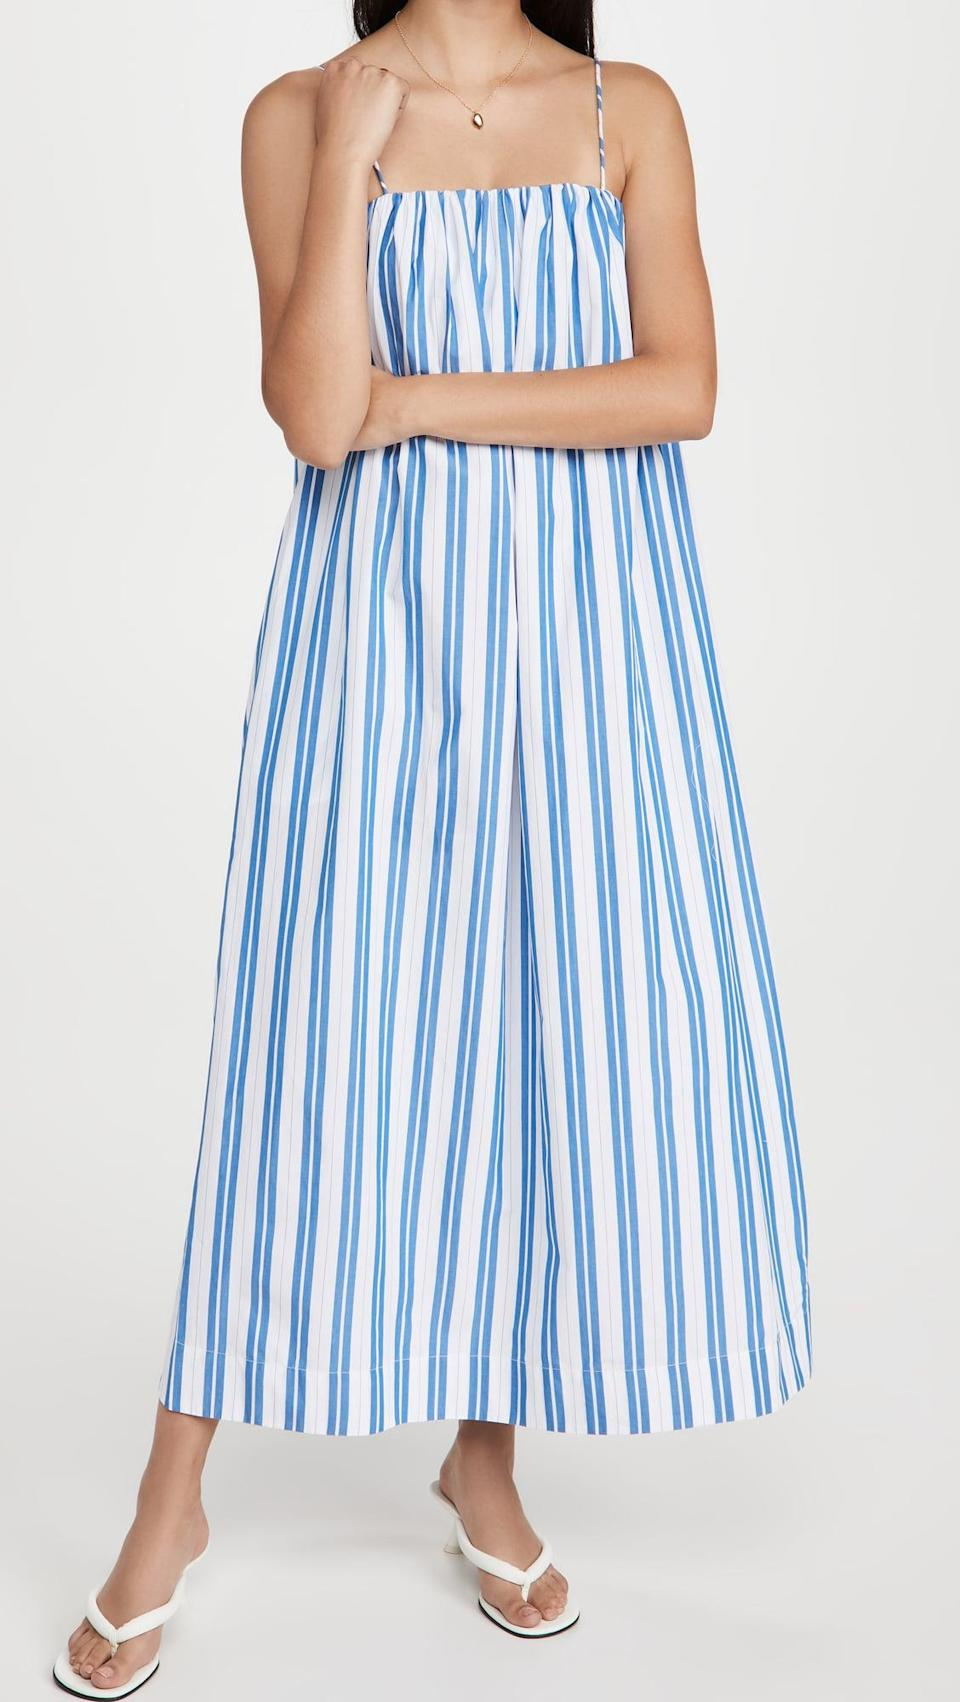 <p>Fast-paced and carefree, an Aries would love the slight swing of this adorable <span>Ganni Stripe Cotton Strap Dress</span> ($285). The breezy silhouette and light cotton poplin highlight Aries's uncomplicated nature.</p>